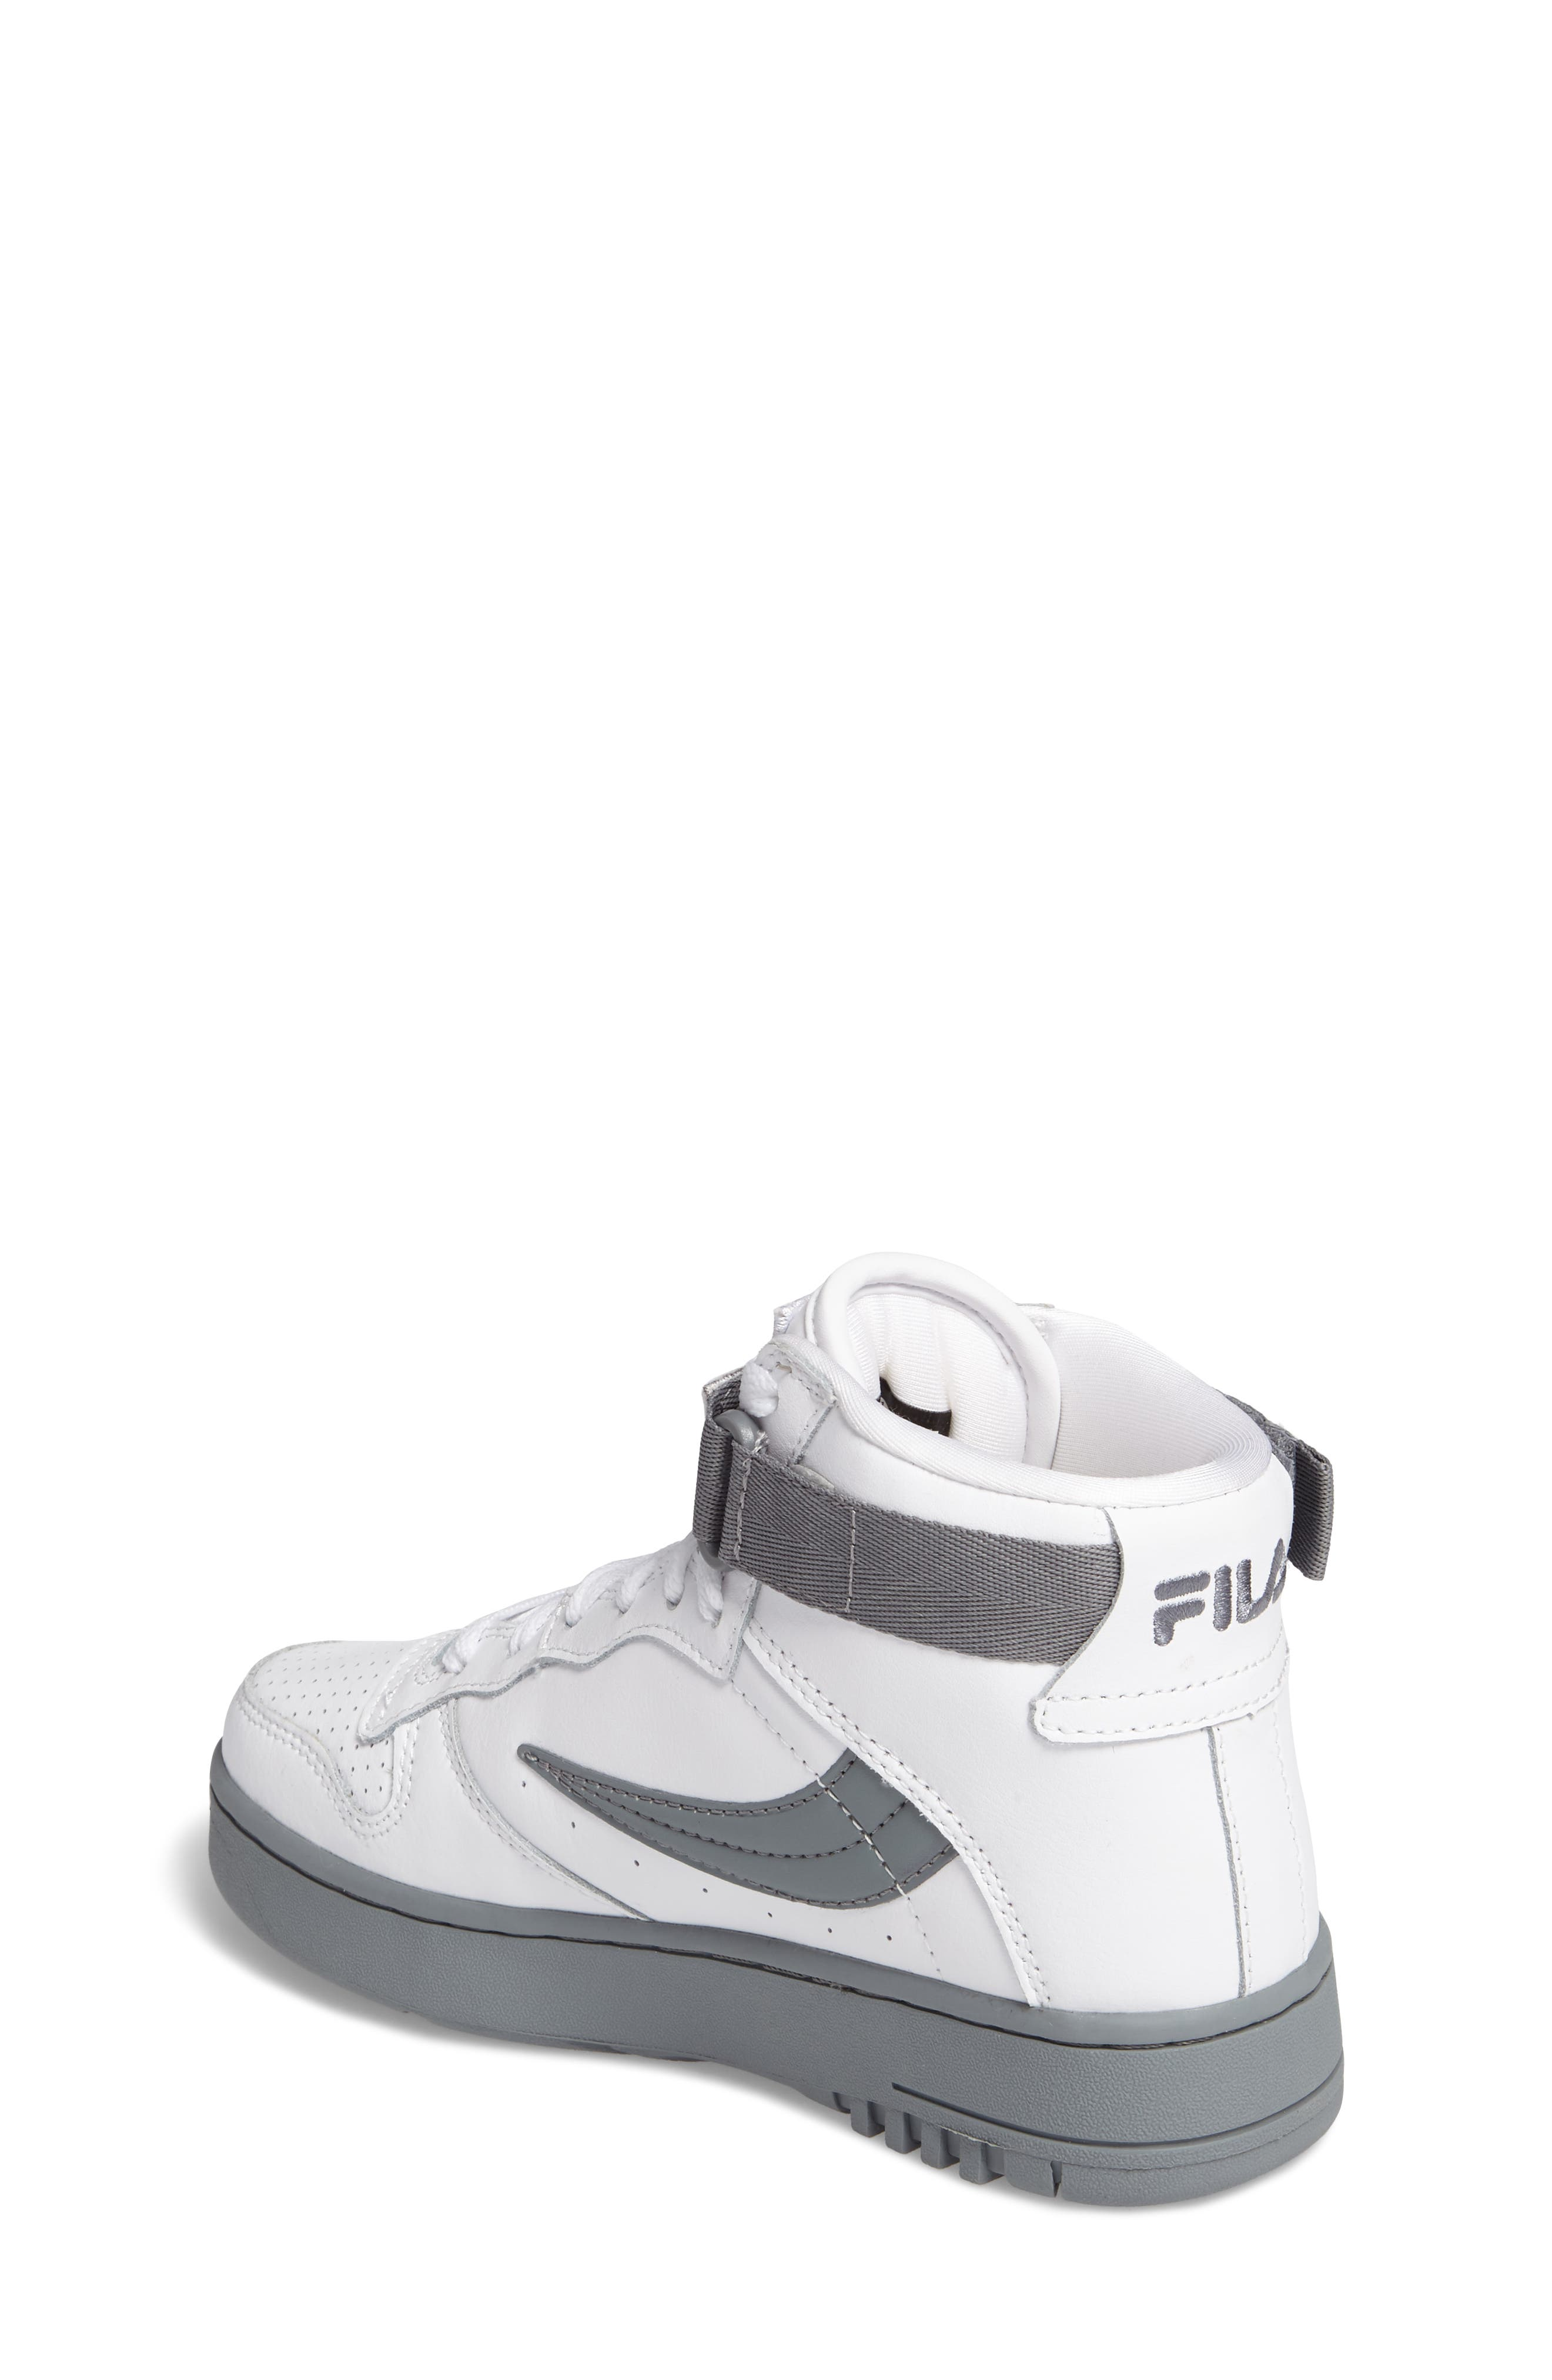 FX-100 High Top Sneaker,                             Alternate thumbnail 2, color,